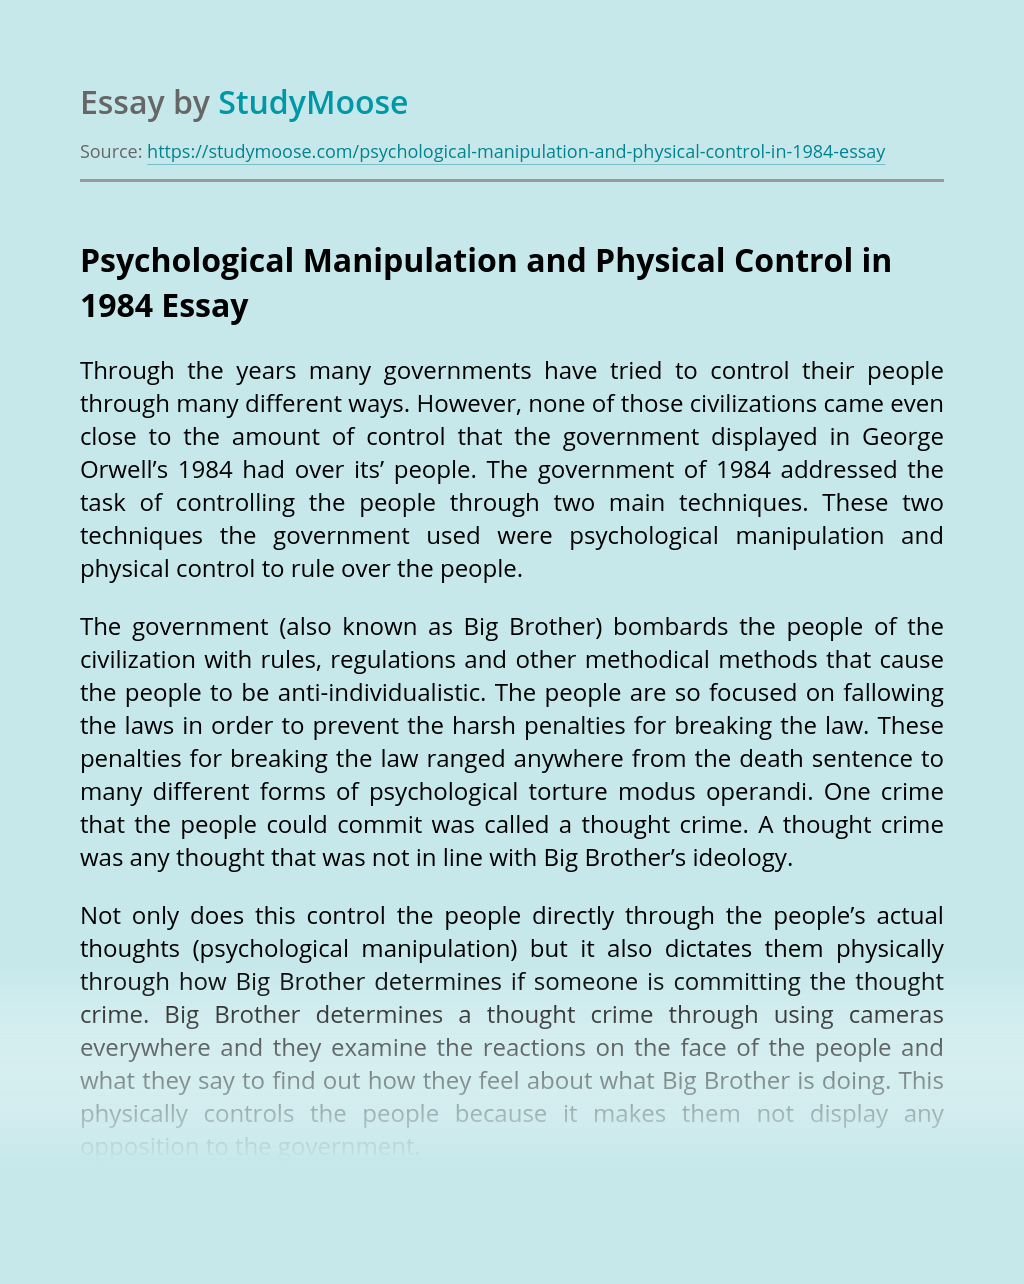 Psychological Manipulation and Physical Control in 1984